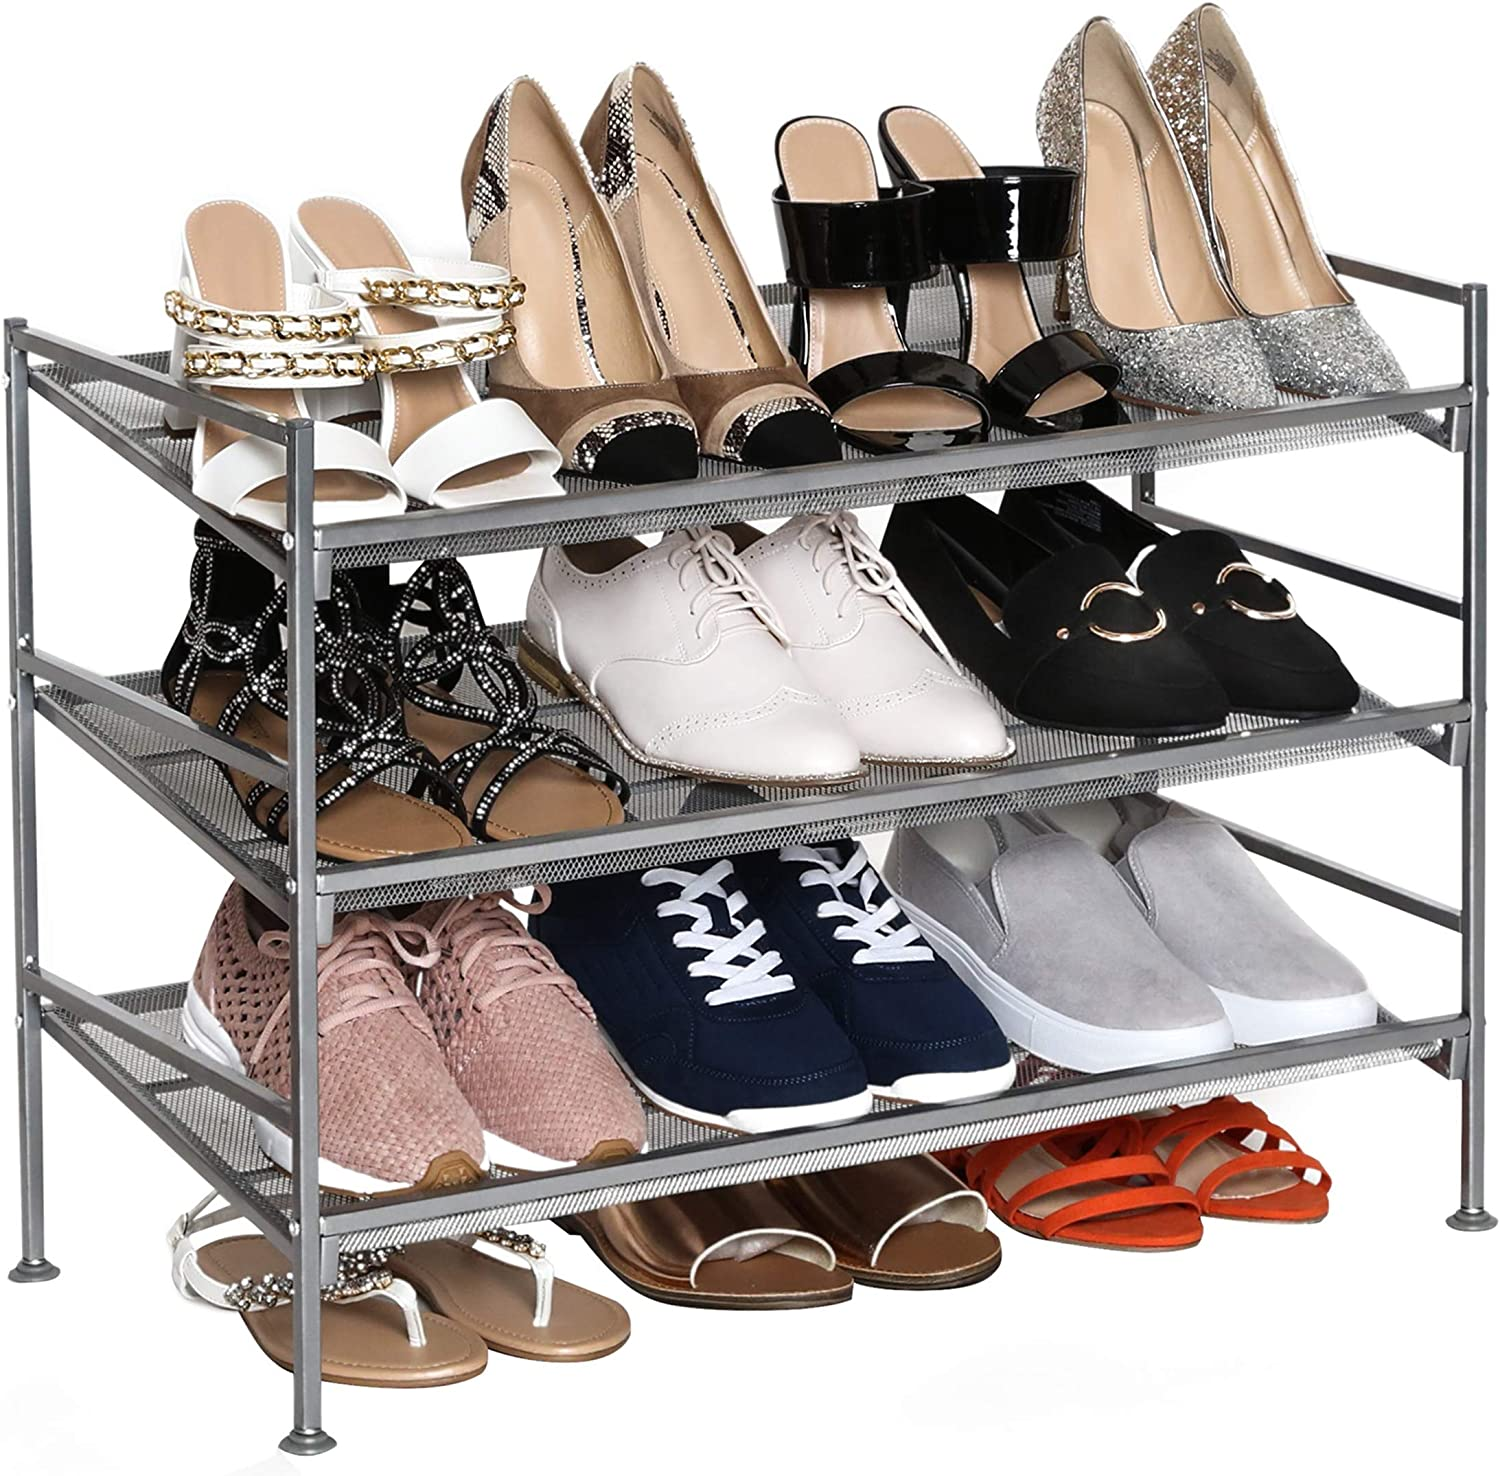 Seville Classics 3 Tier Stackable 12 Pair Multi Position Shoe Rack Adjustable Metal Freestanding Storage Shelf For Bedroom Closet Entryway Dorm Room Satin Pewter Mesh Home Kitchen